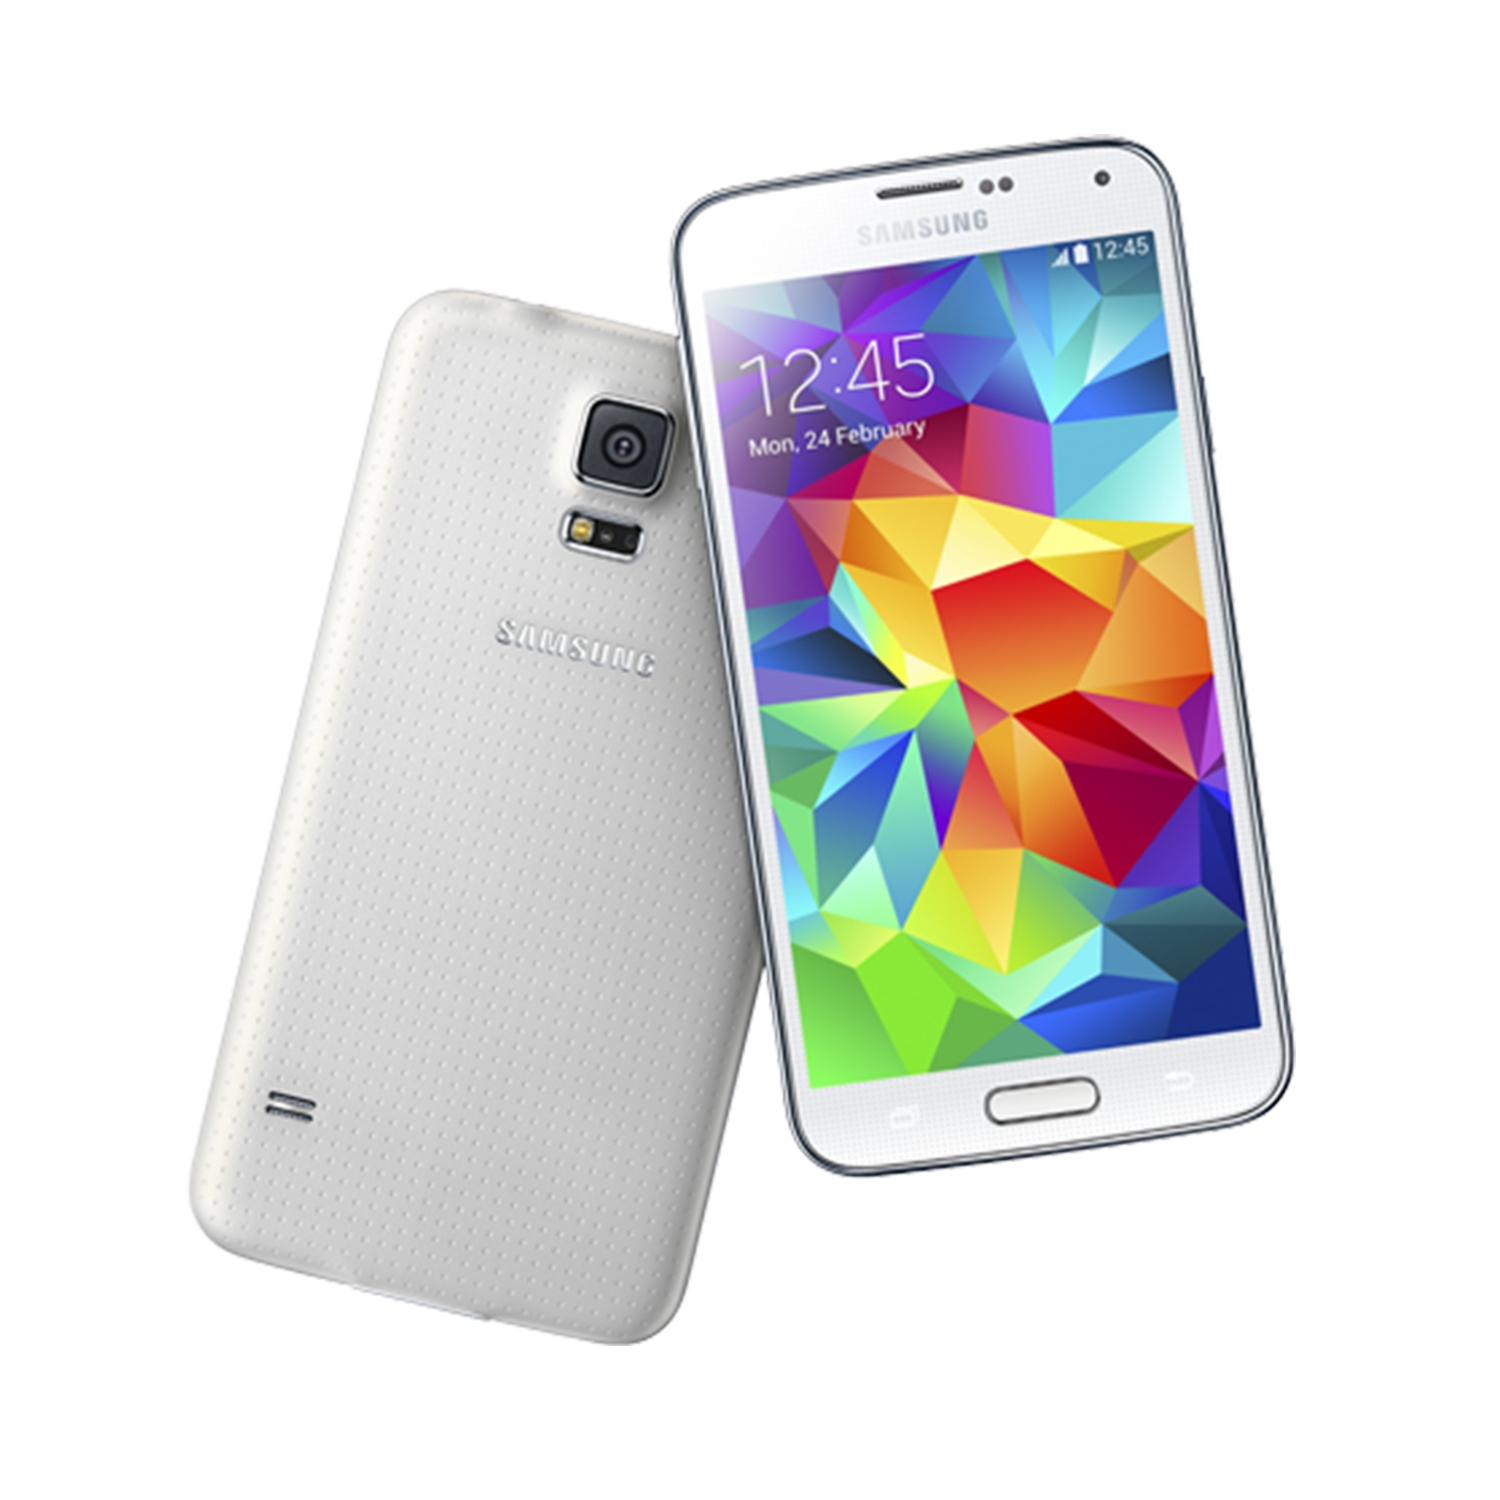 samsung galaxy s5 16gb g900 android smartphone unlocked gsm white mint condition used. Black Bedroom Furniture Sets. Home Design Ideas